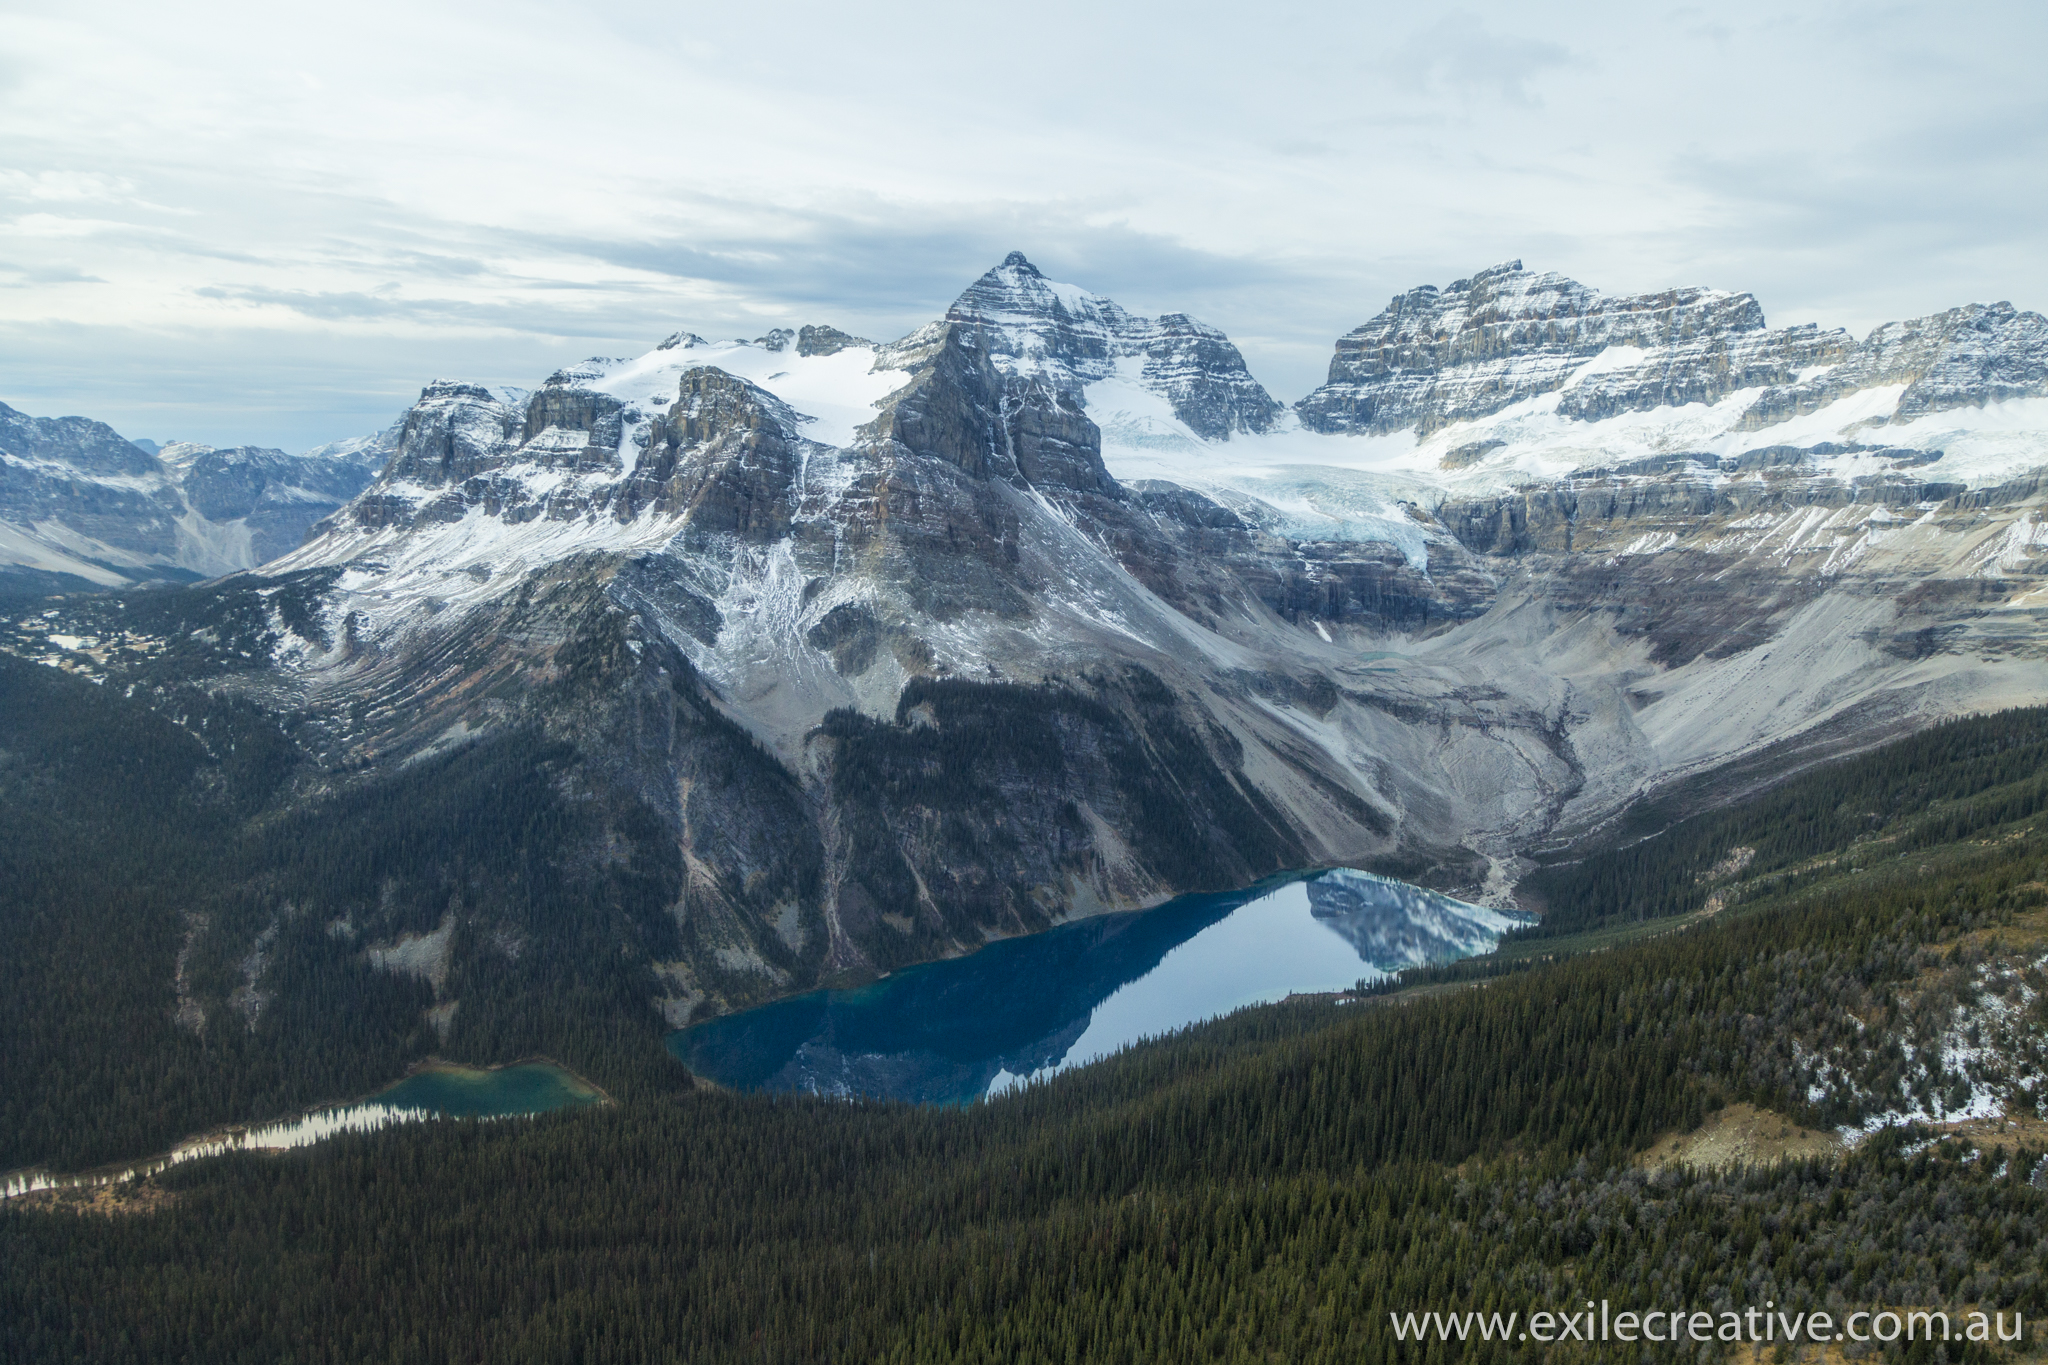 Mount Assiniboine from the East with Lake Gloria (closest to the peak) and Marvel Lake